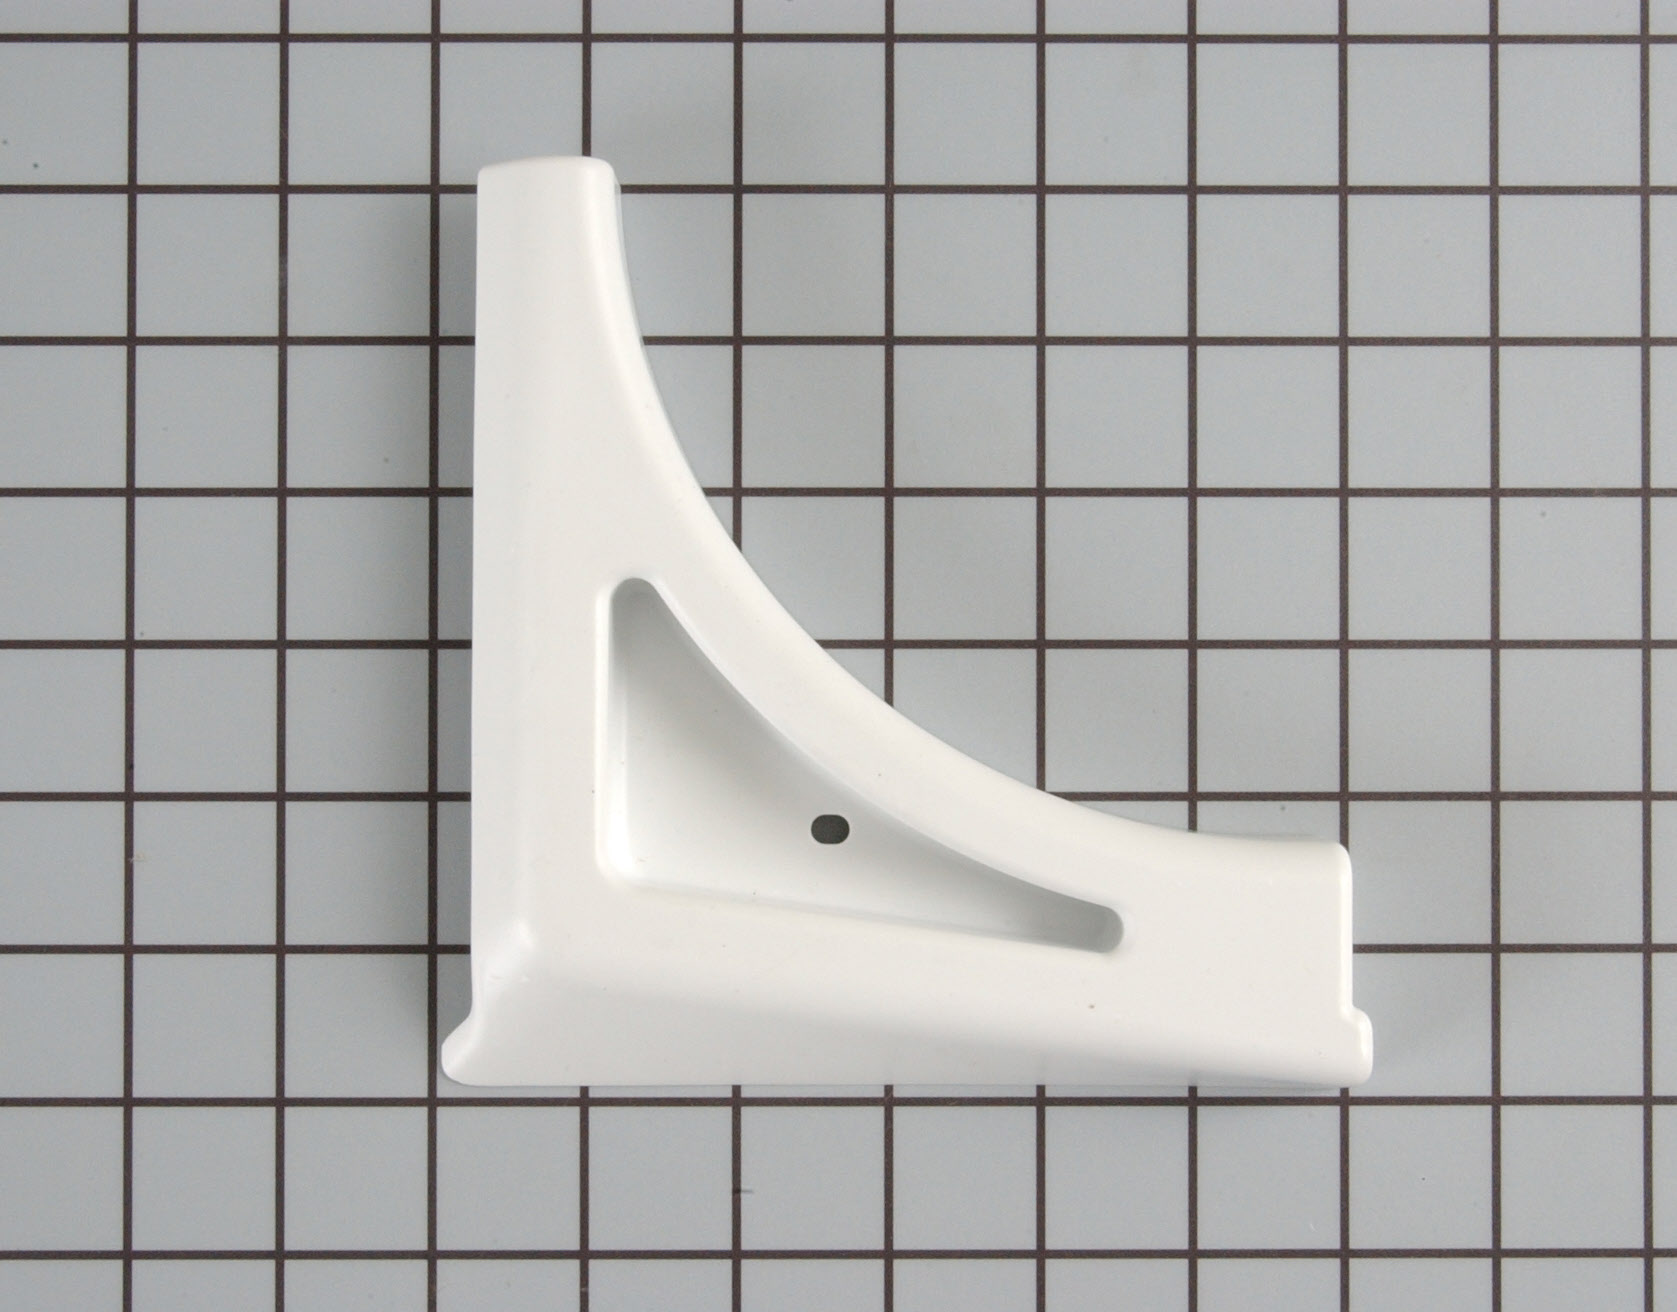 Amana Refrigerator Part # WP67001722 - Drawer Support